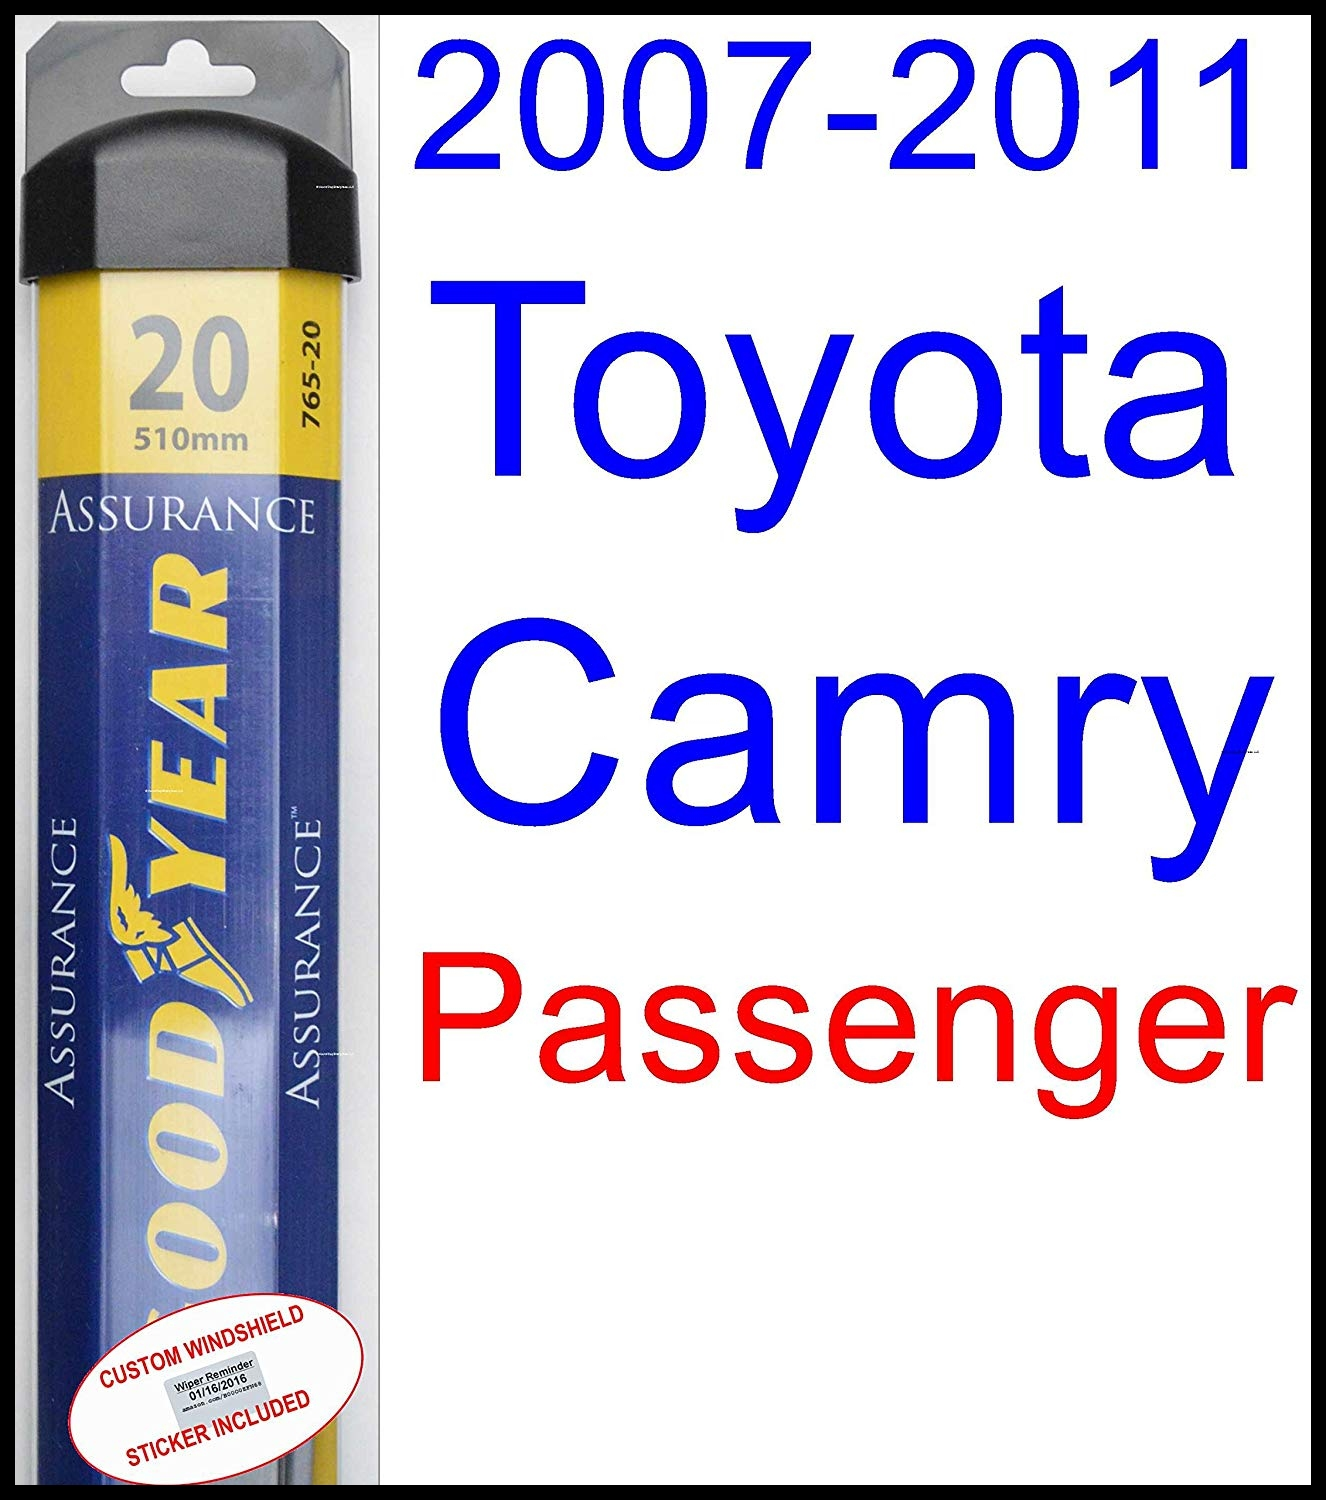 Amazon 2007 2011 Toyota Camry Replacement Wiper Blade Set Kit Set of 2 Blades Goodyear Wiper Blades Assurance 2008 2009 2010 Automotive